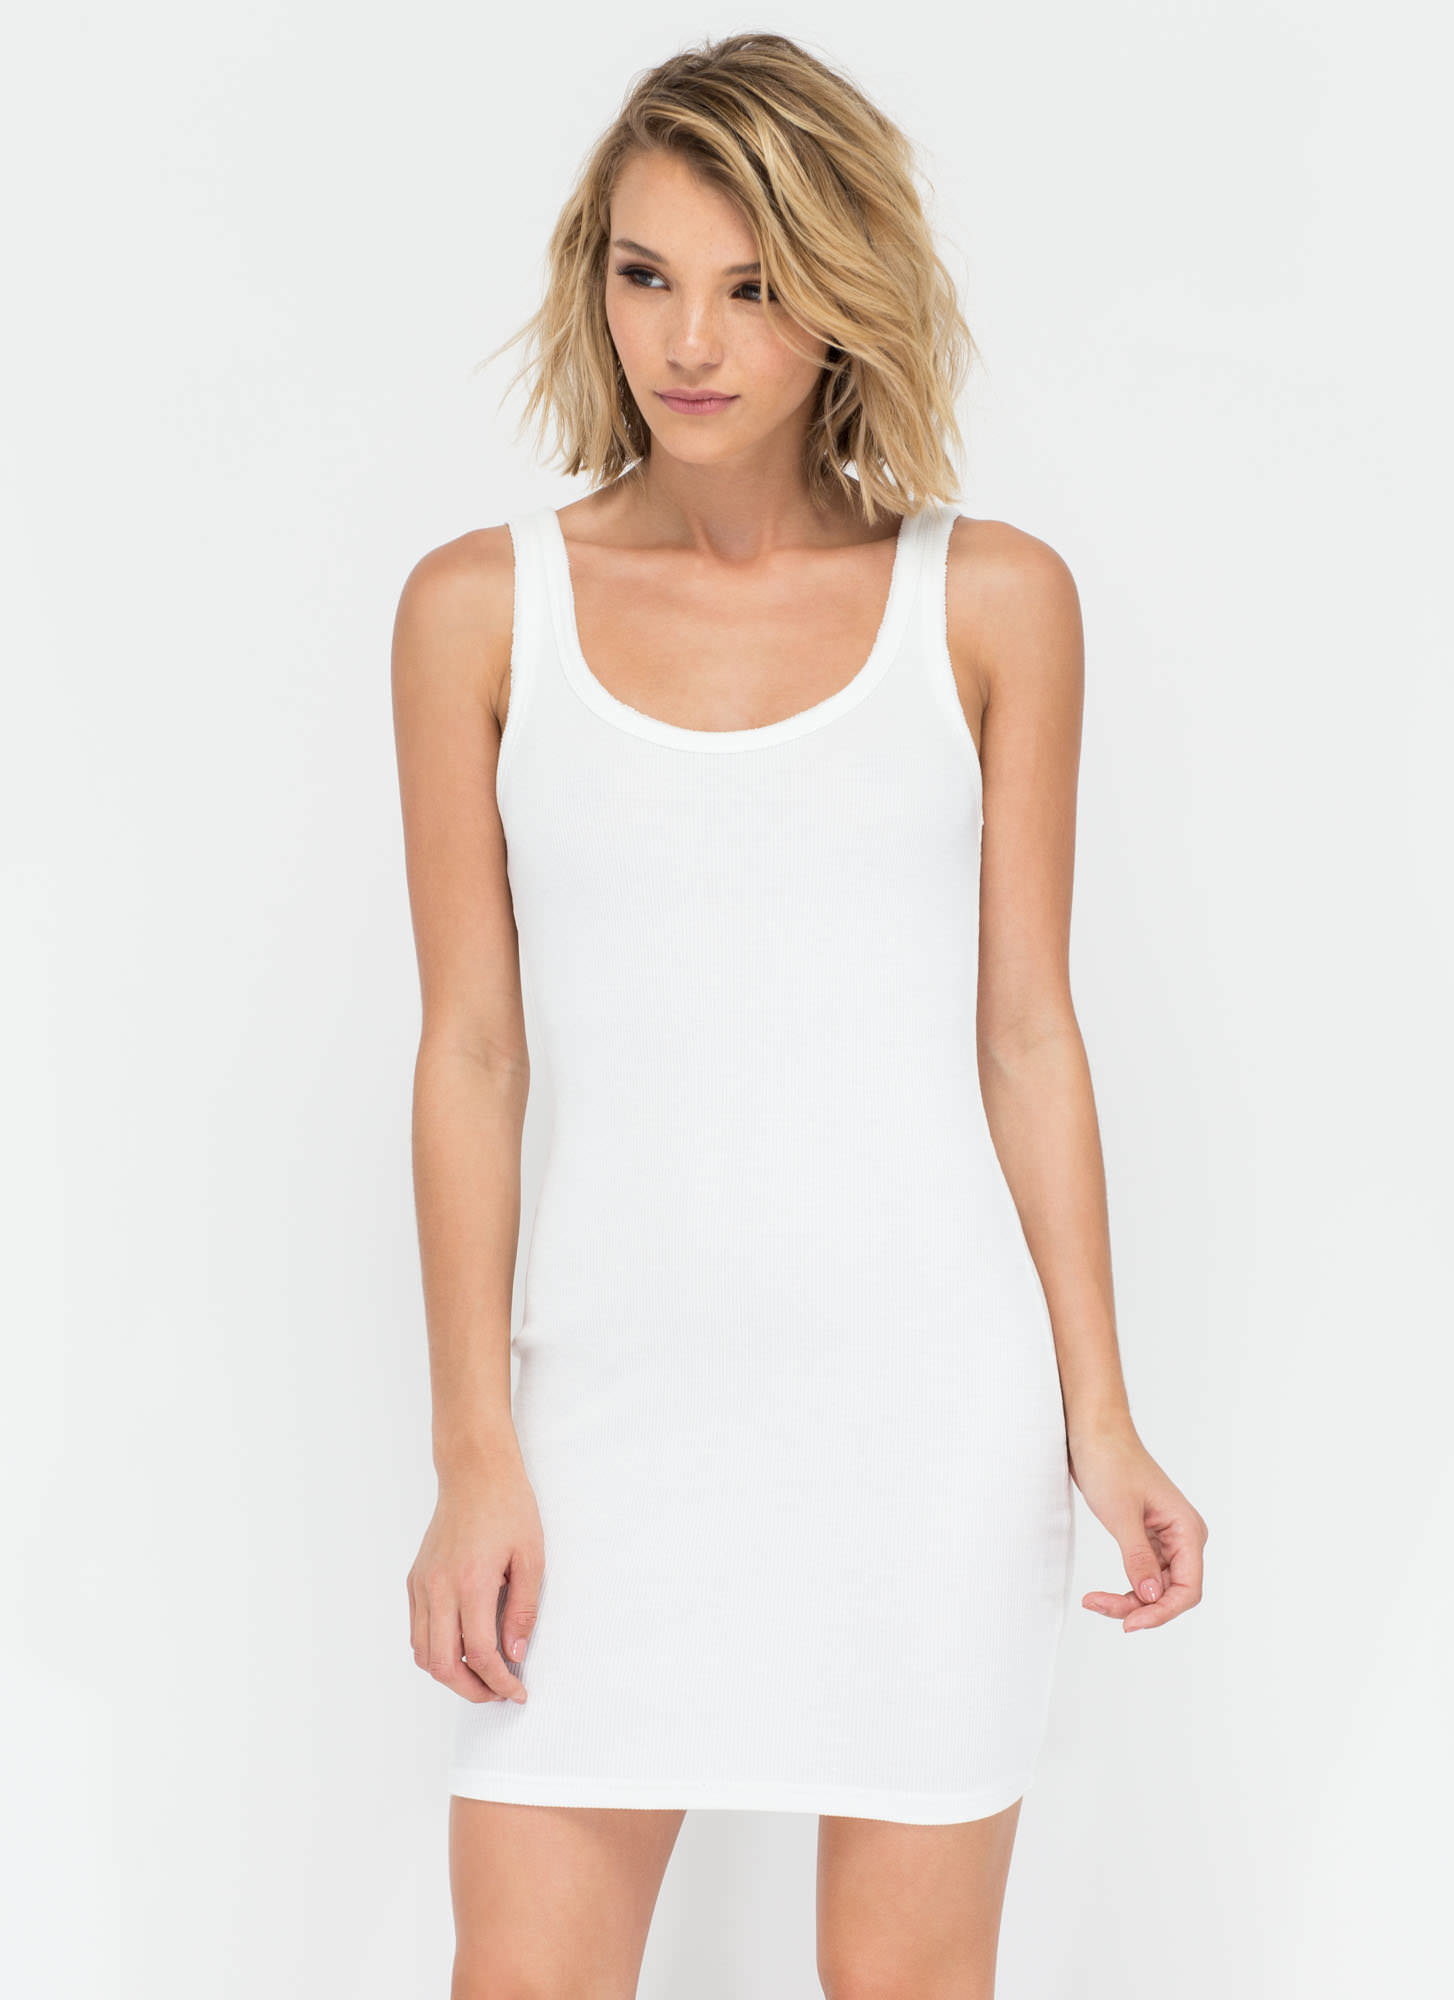 Beach Bunny Rib Knit Tank Dress